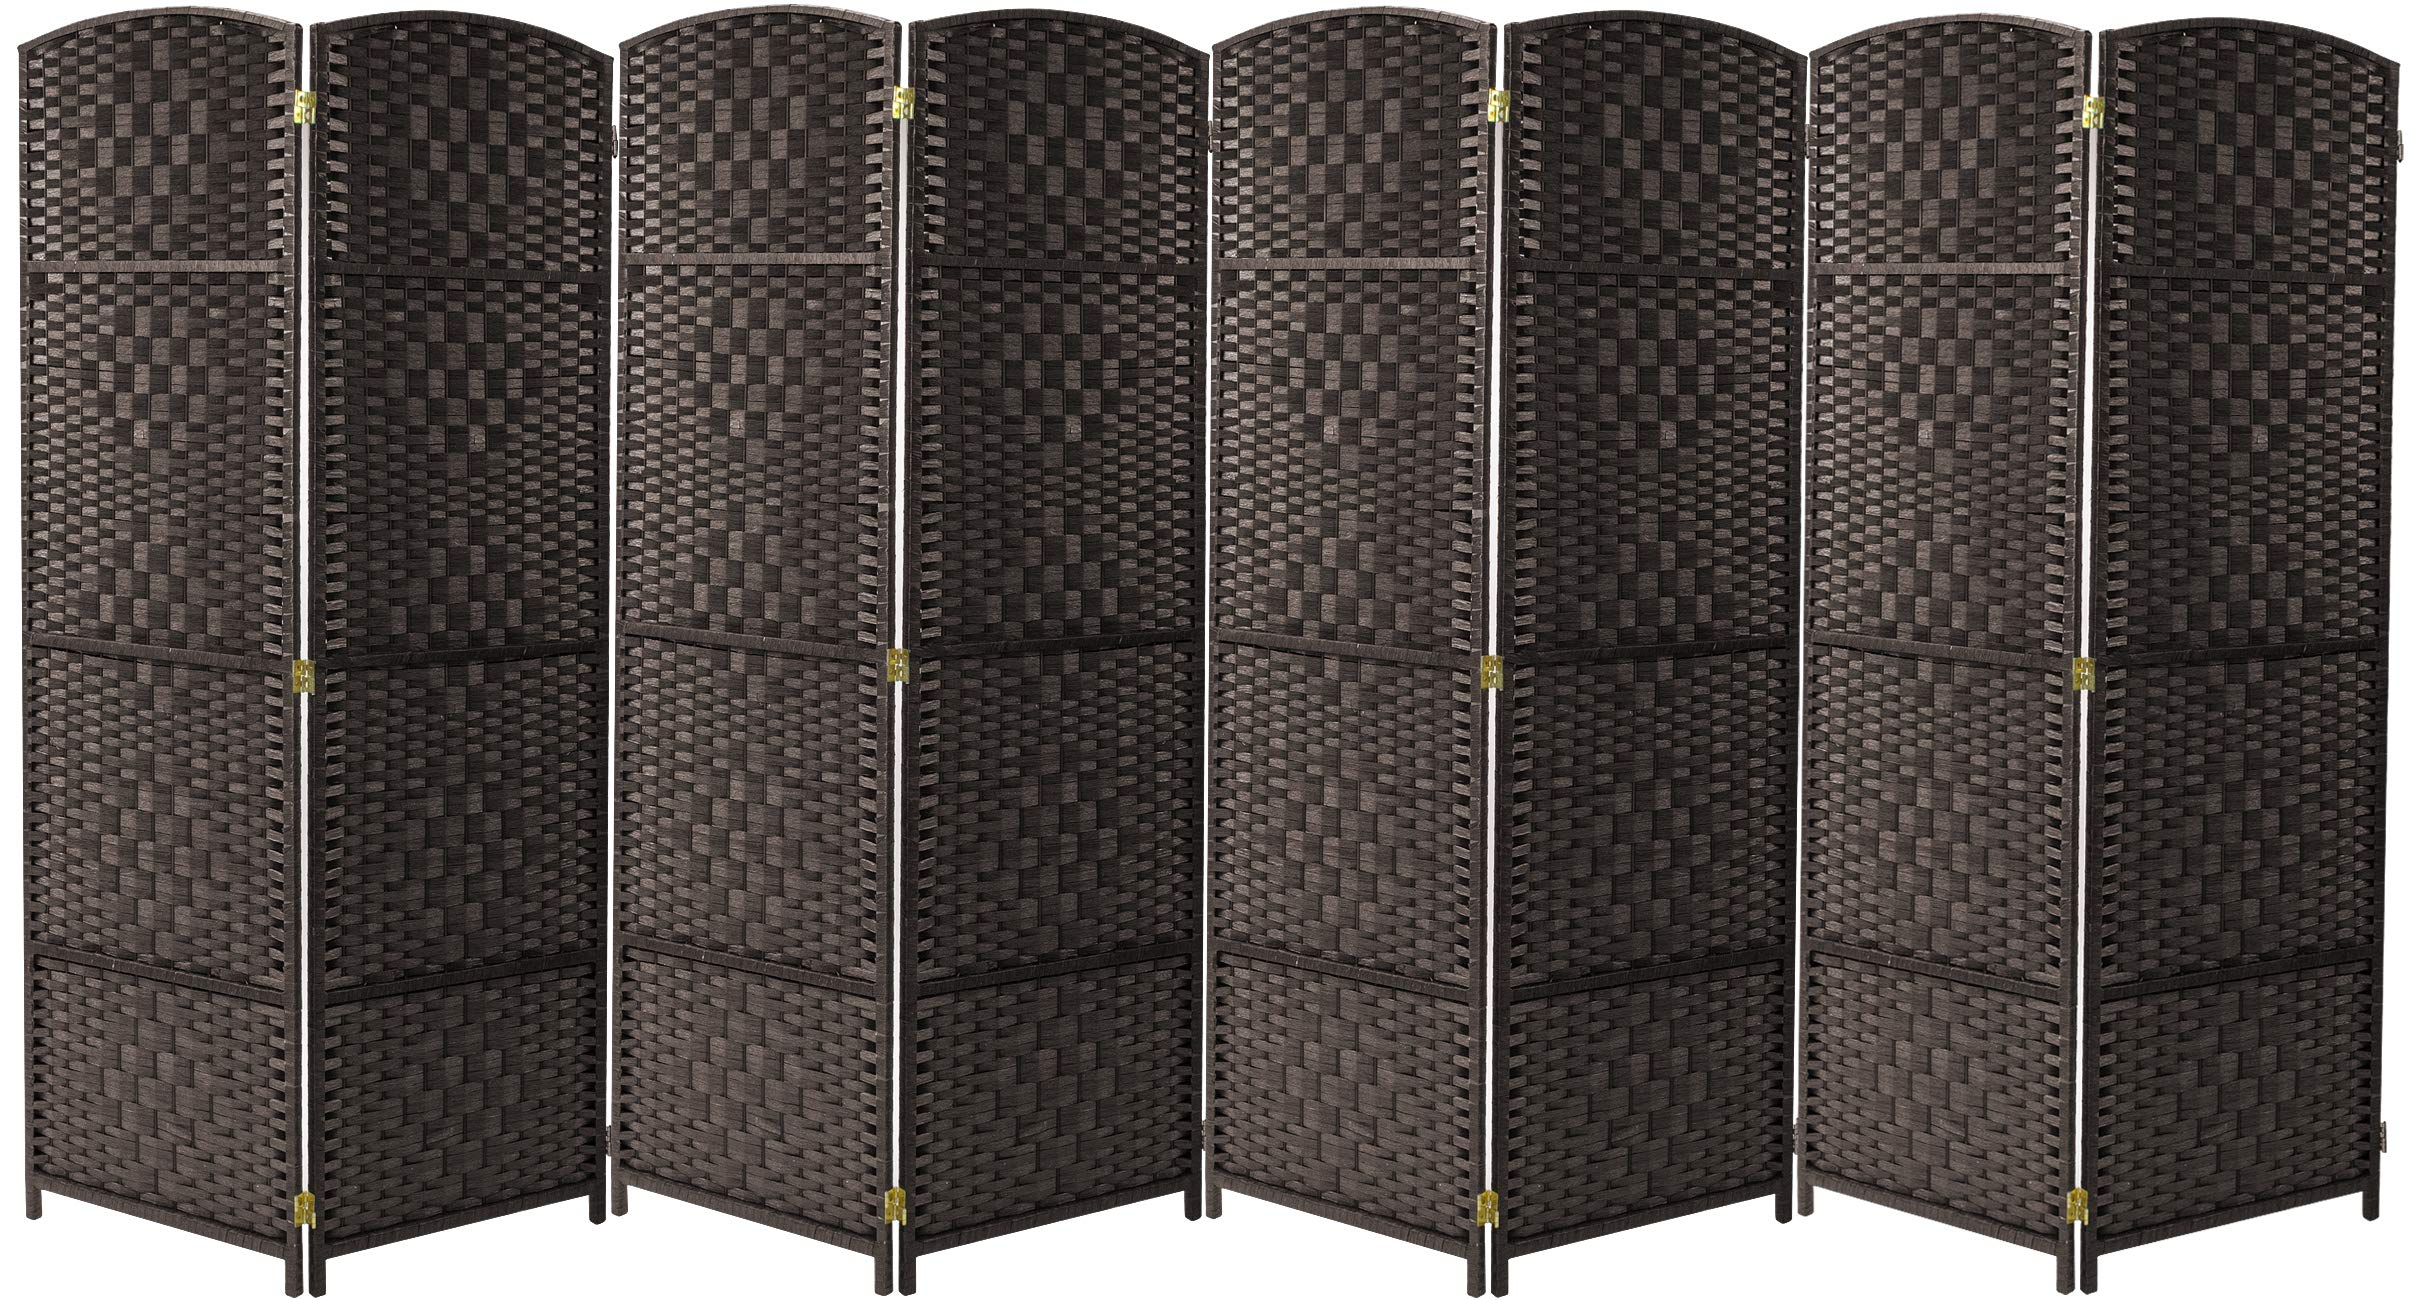 Sorbus Room Divider Privacy Screen, Foldable Panel Partition Wall Divider, Room Dividers and Folding Privacy Screens, Diamond Double-Weaved (8 Panel, Espresso Brown) by Sorbus